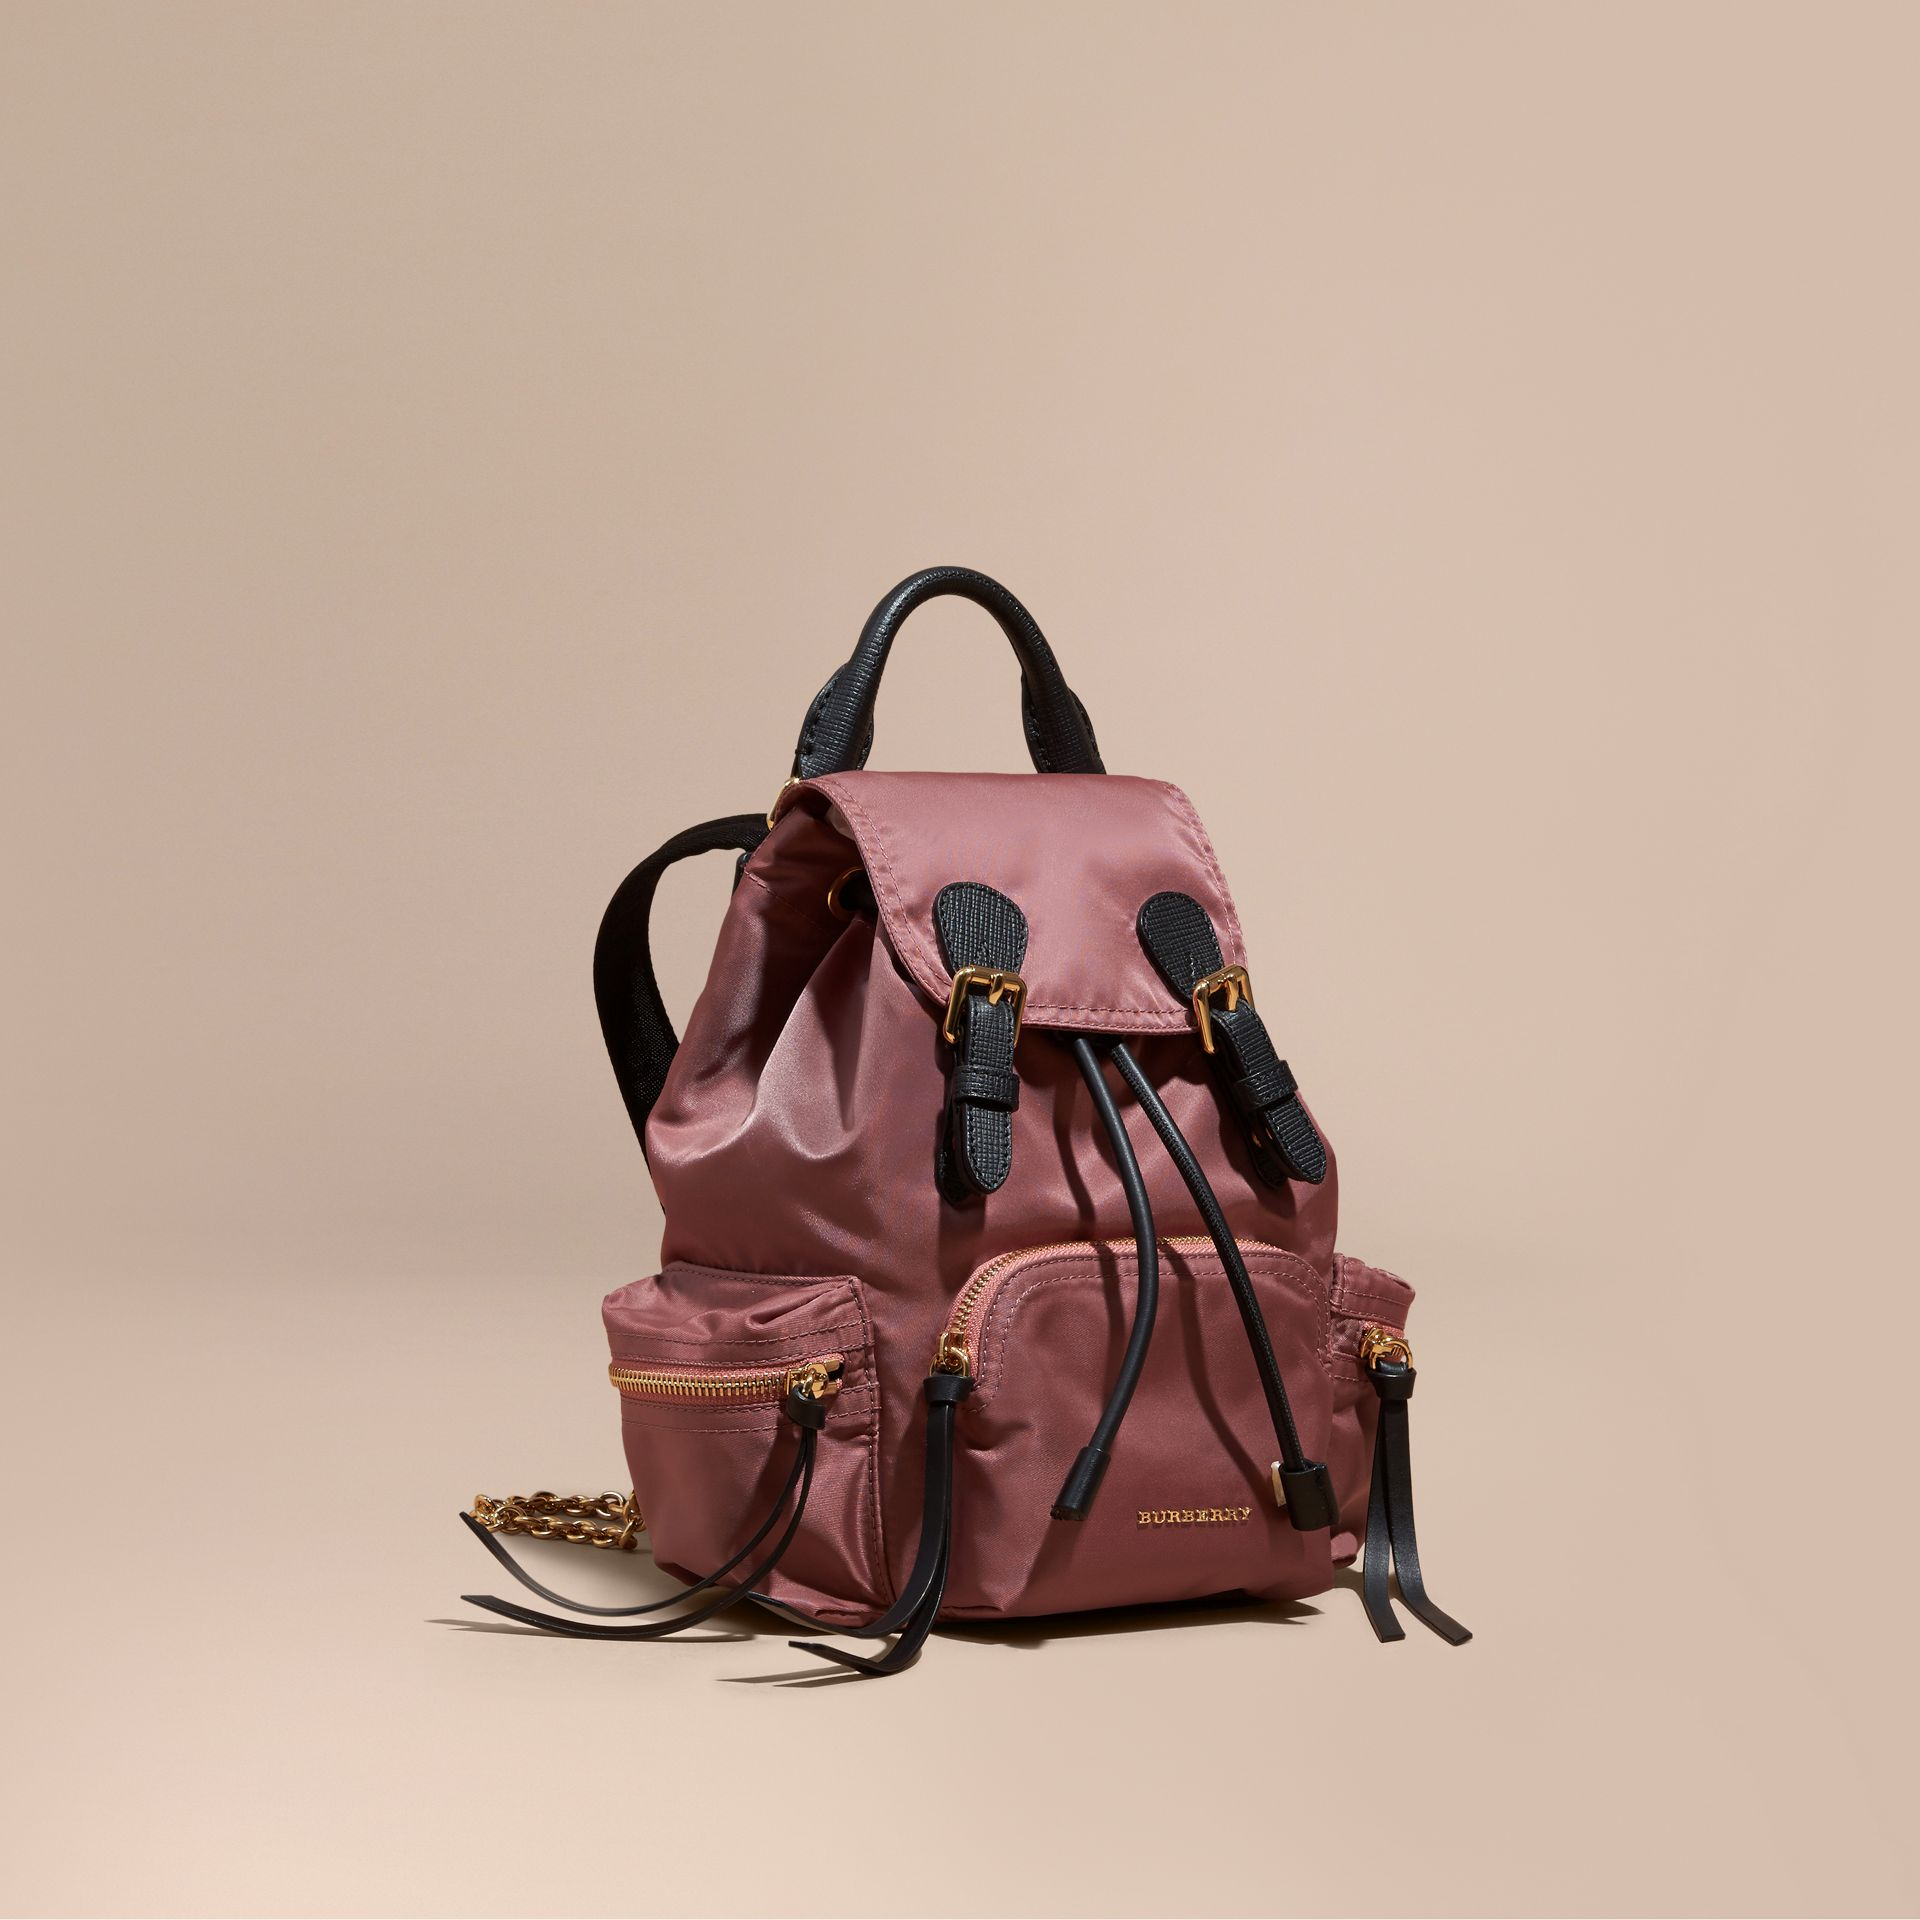 Mauve pink The Small Rucksack in Technical Nylon and Leather Mauve Pink - gallery image 1